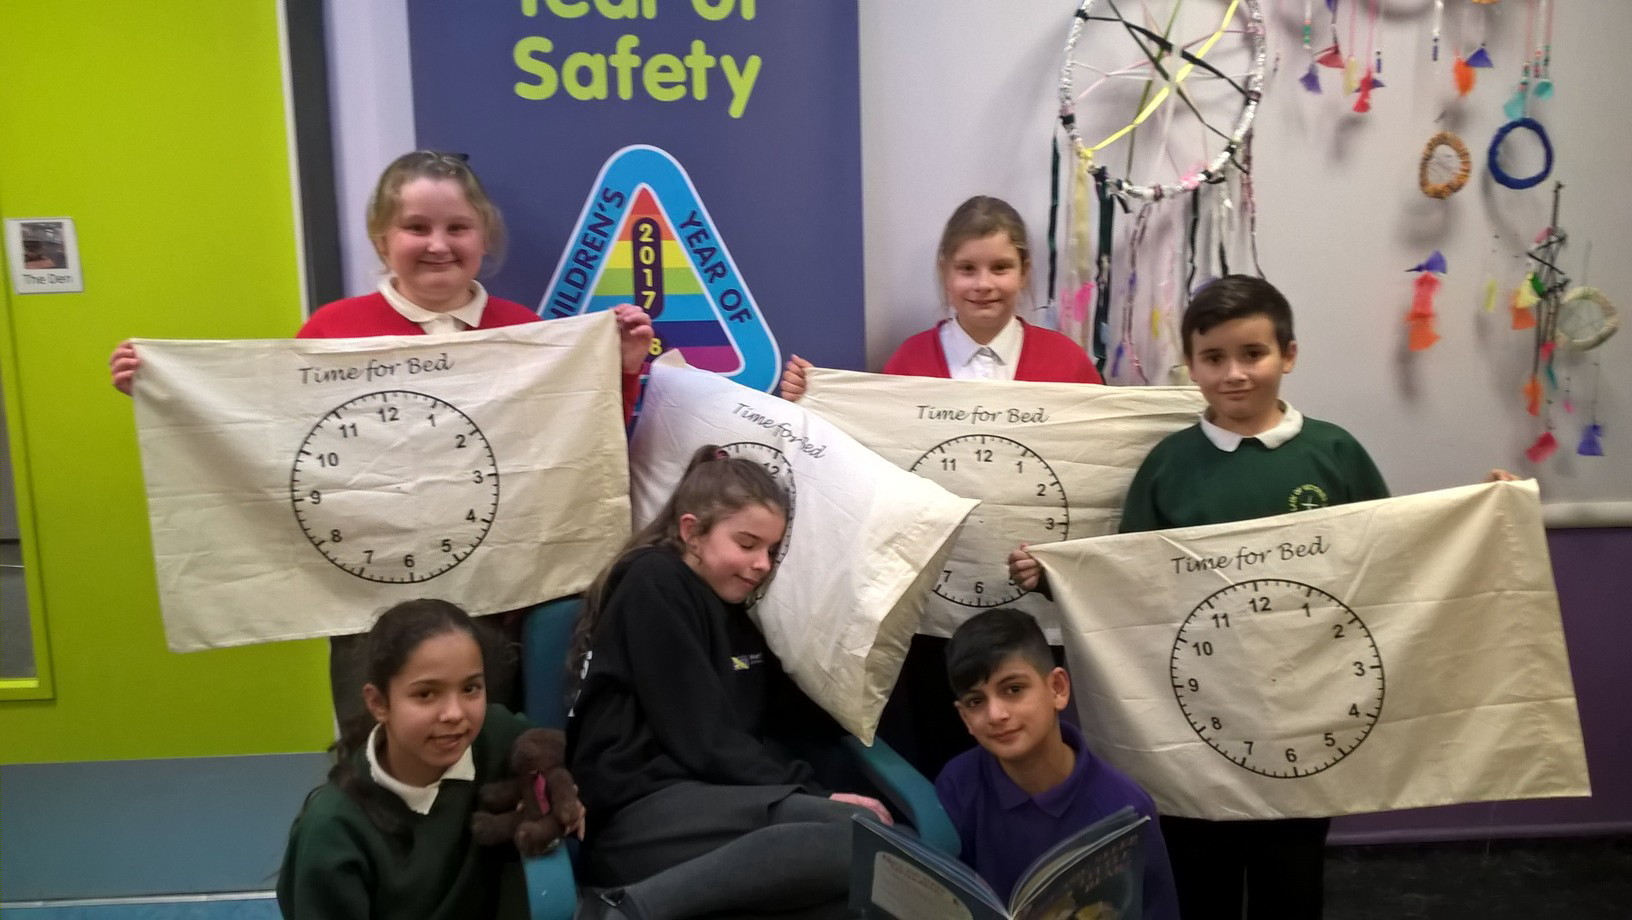 Youngsters with pillowcases donated by Damart, as part of the bedtime theme